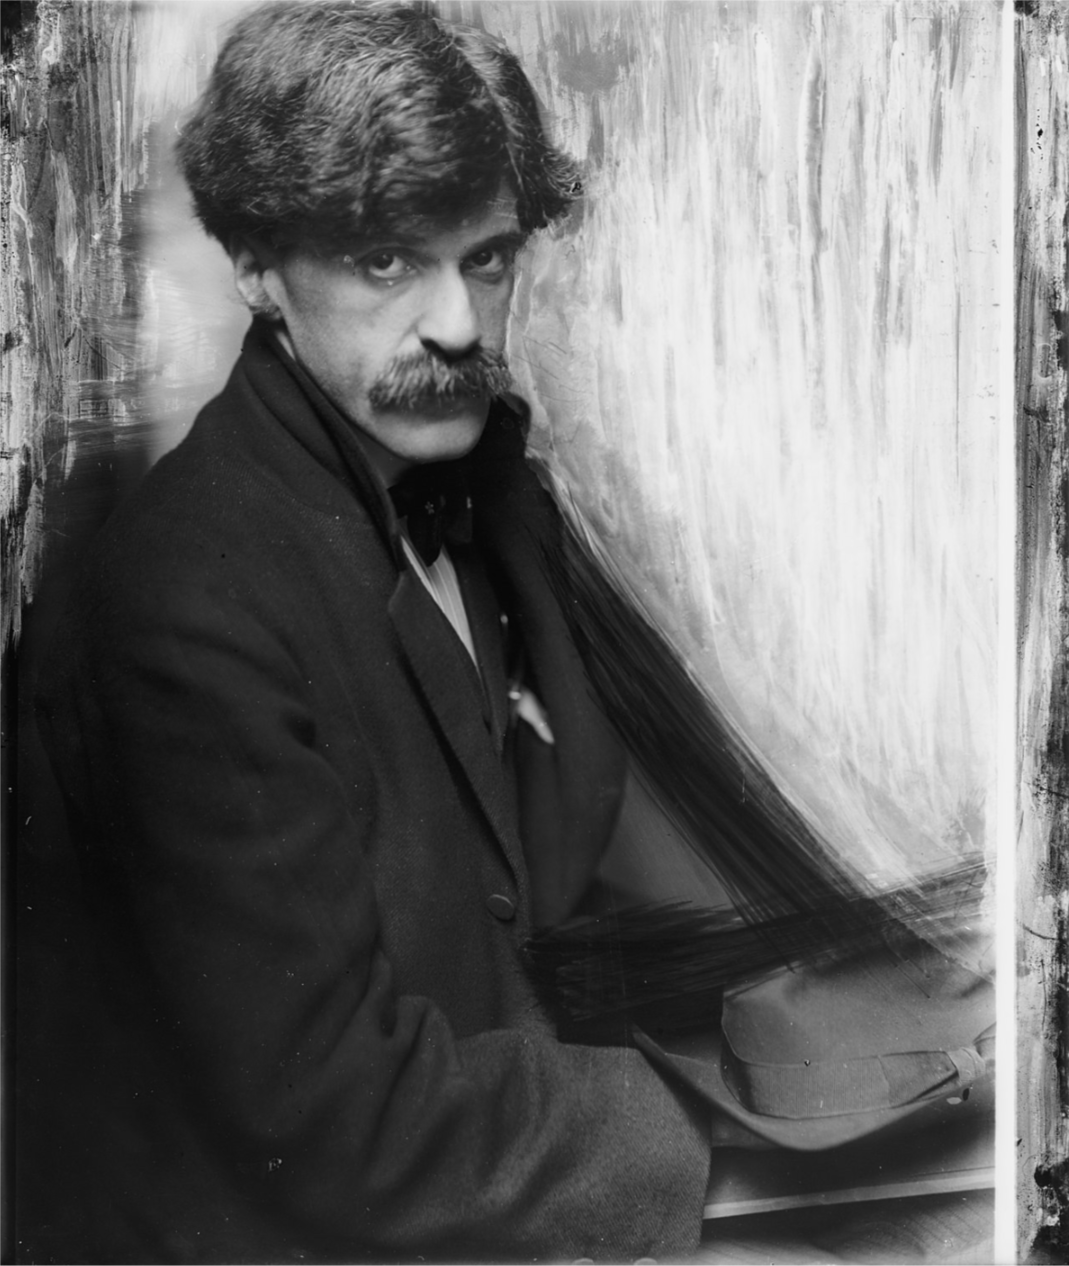 Stieglitz was married to painter Georgia O'Keeffe.